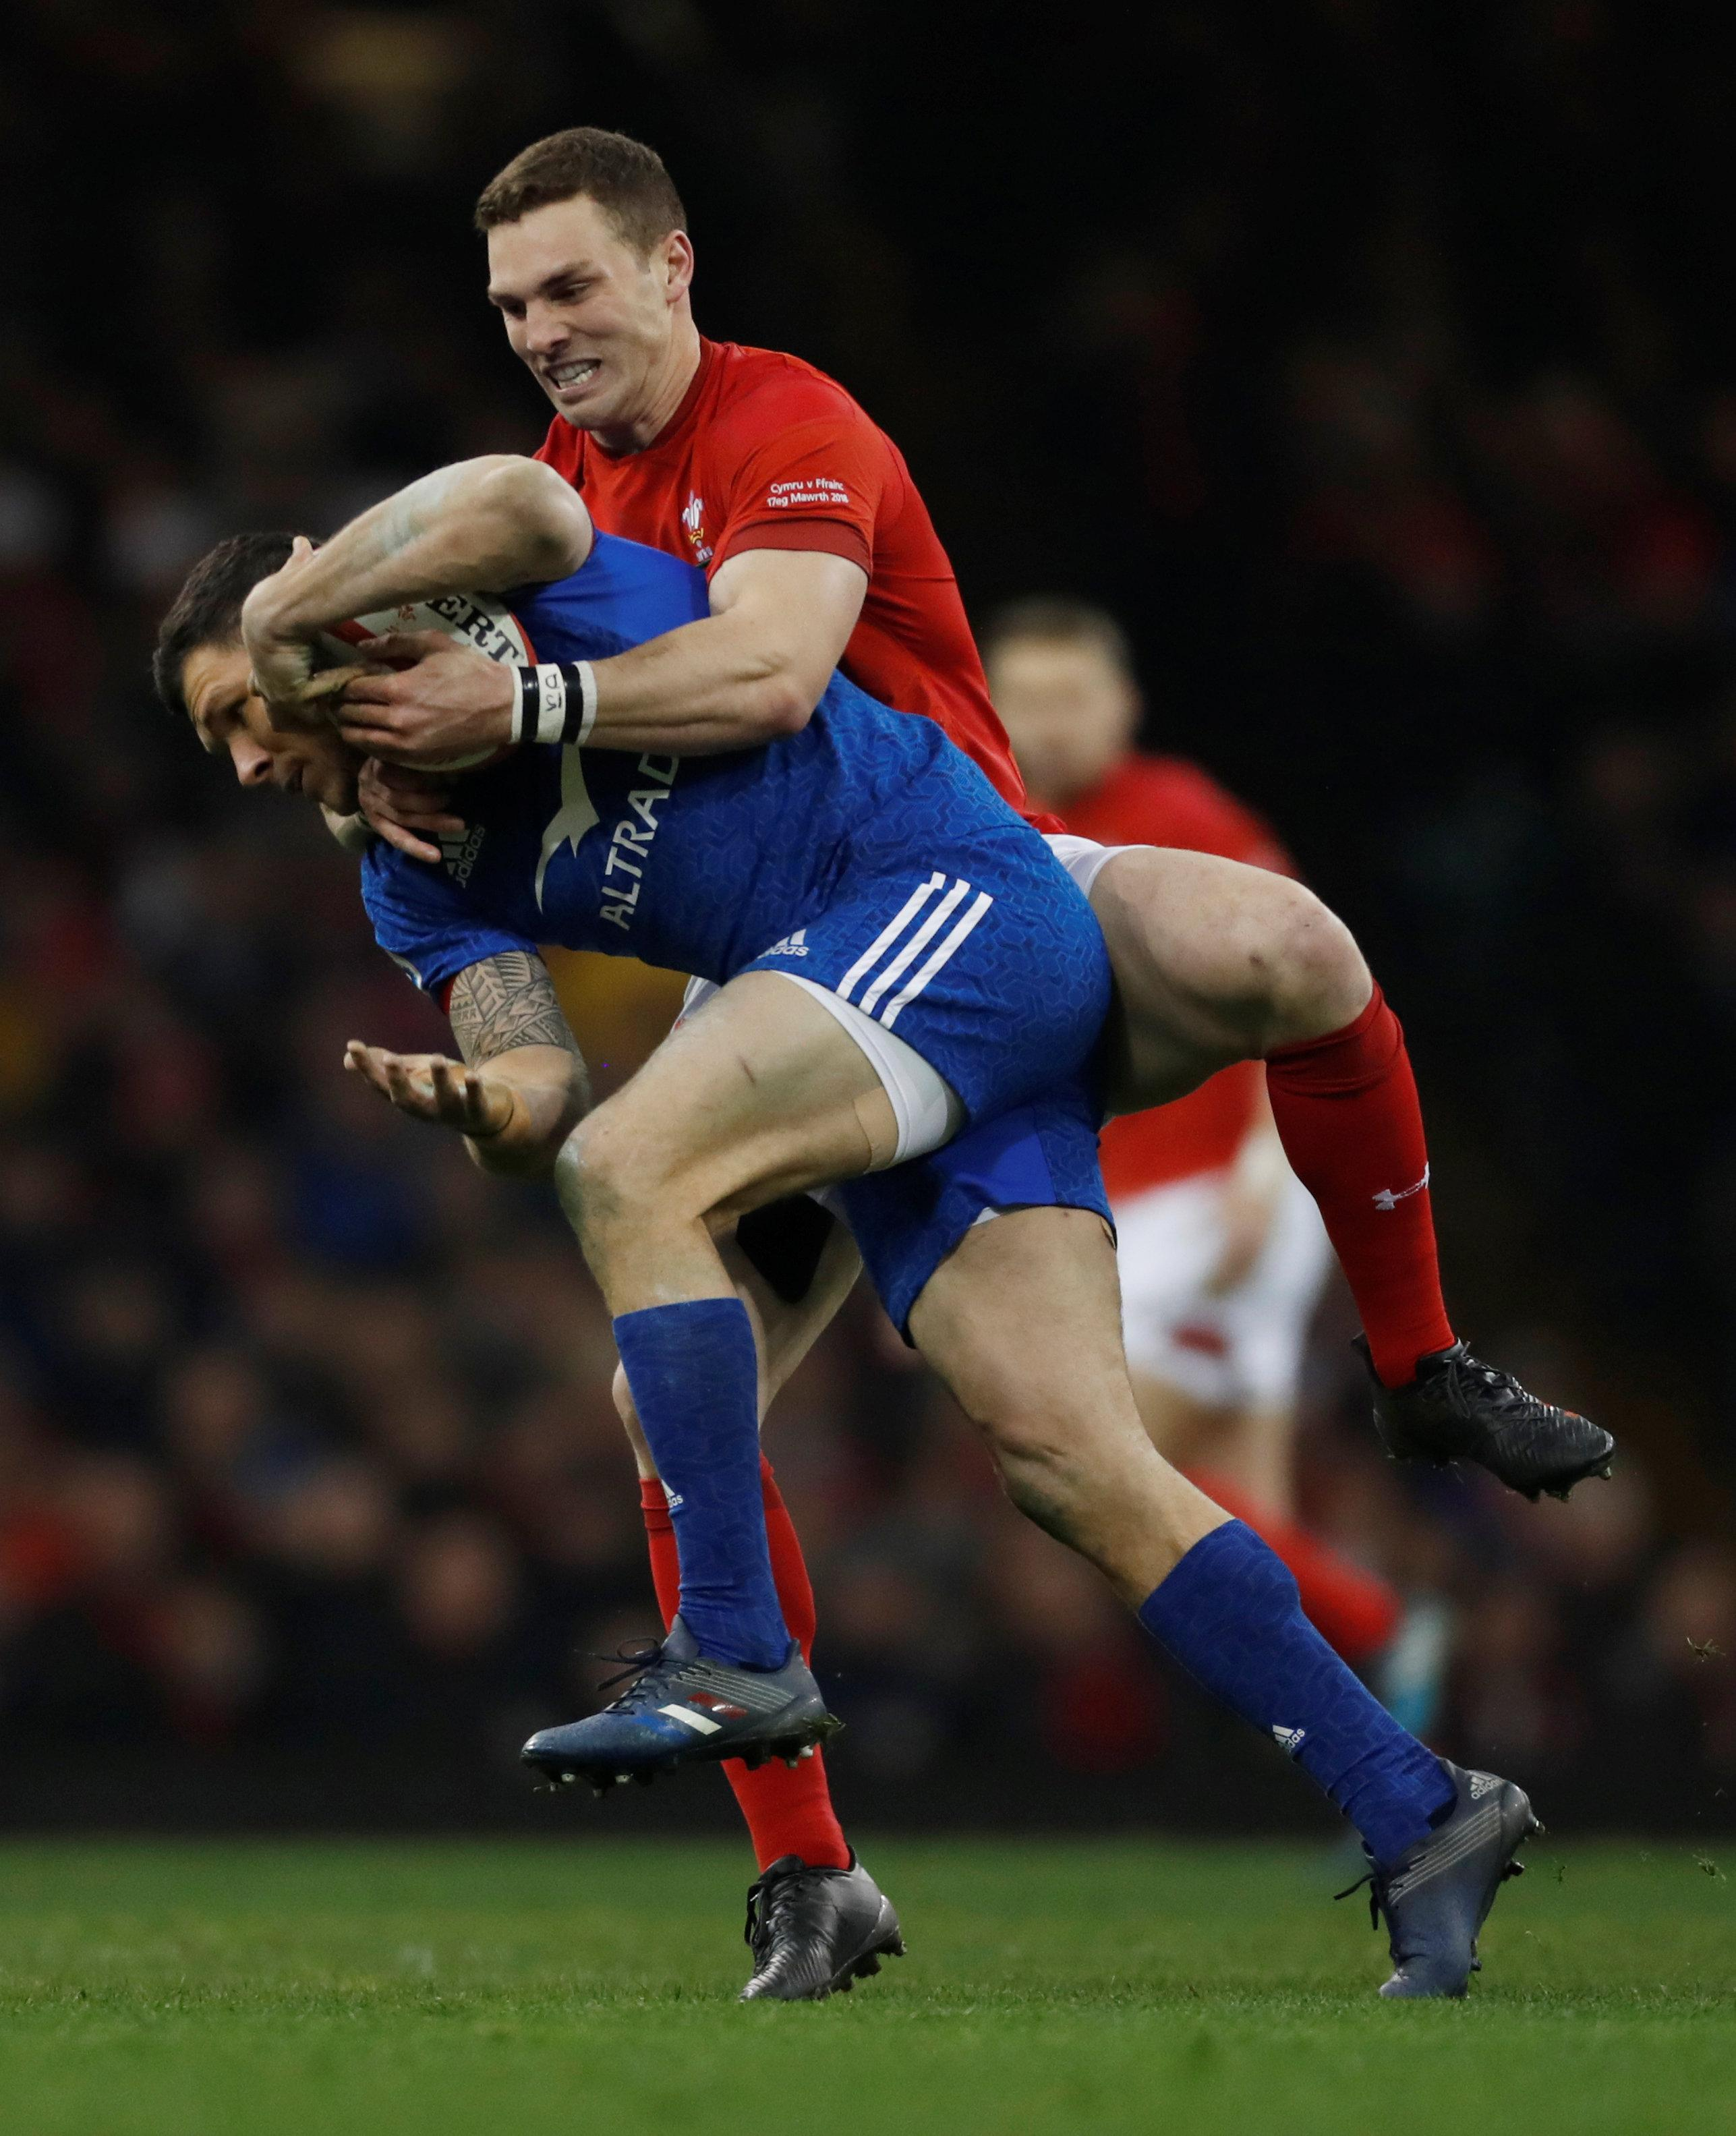 George North played for Wales in their 14-13 win over France in the final round of the Six Nations